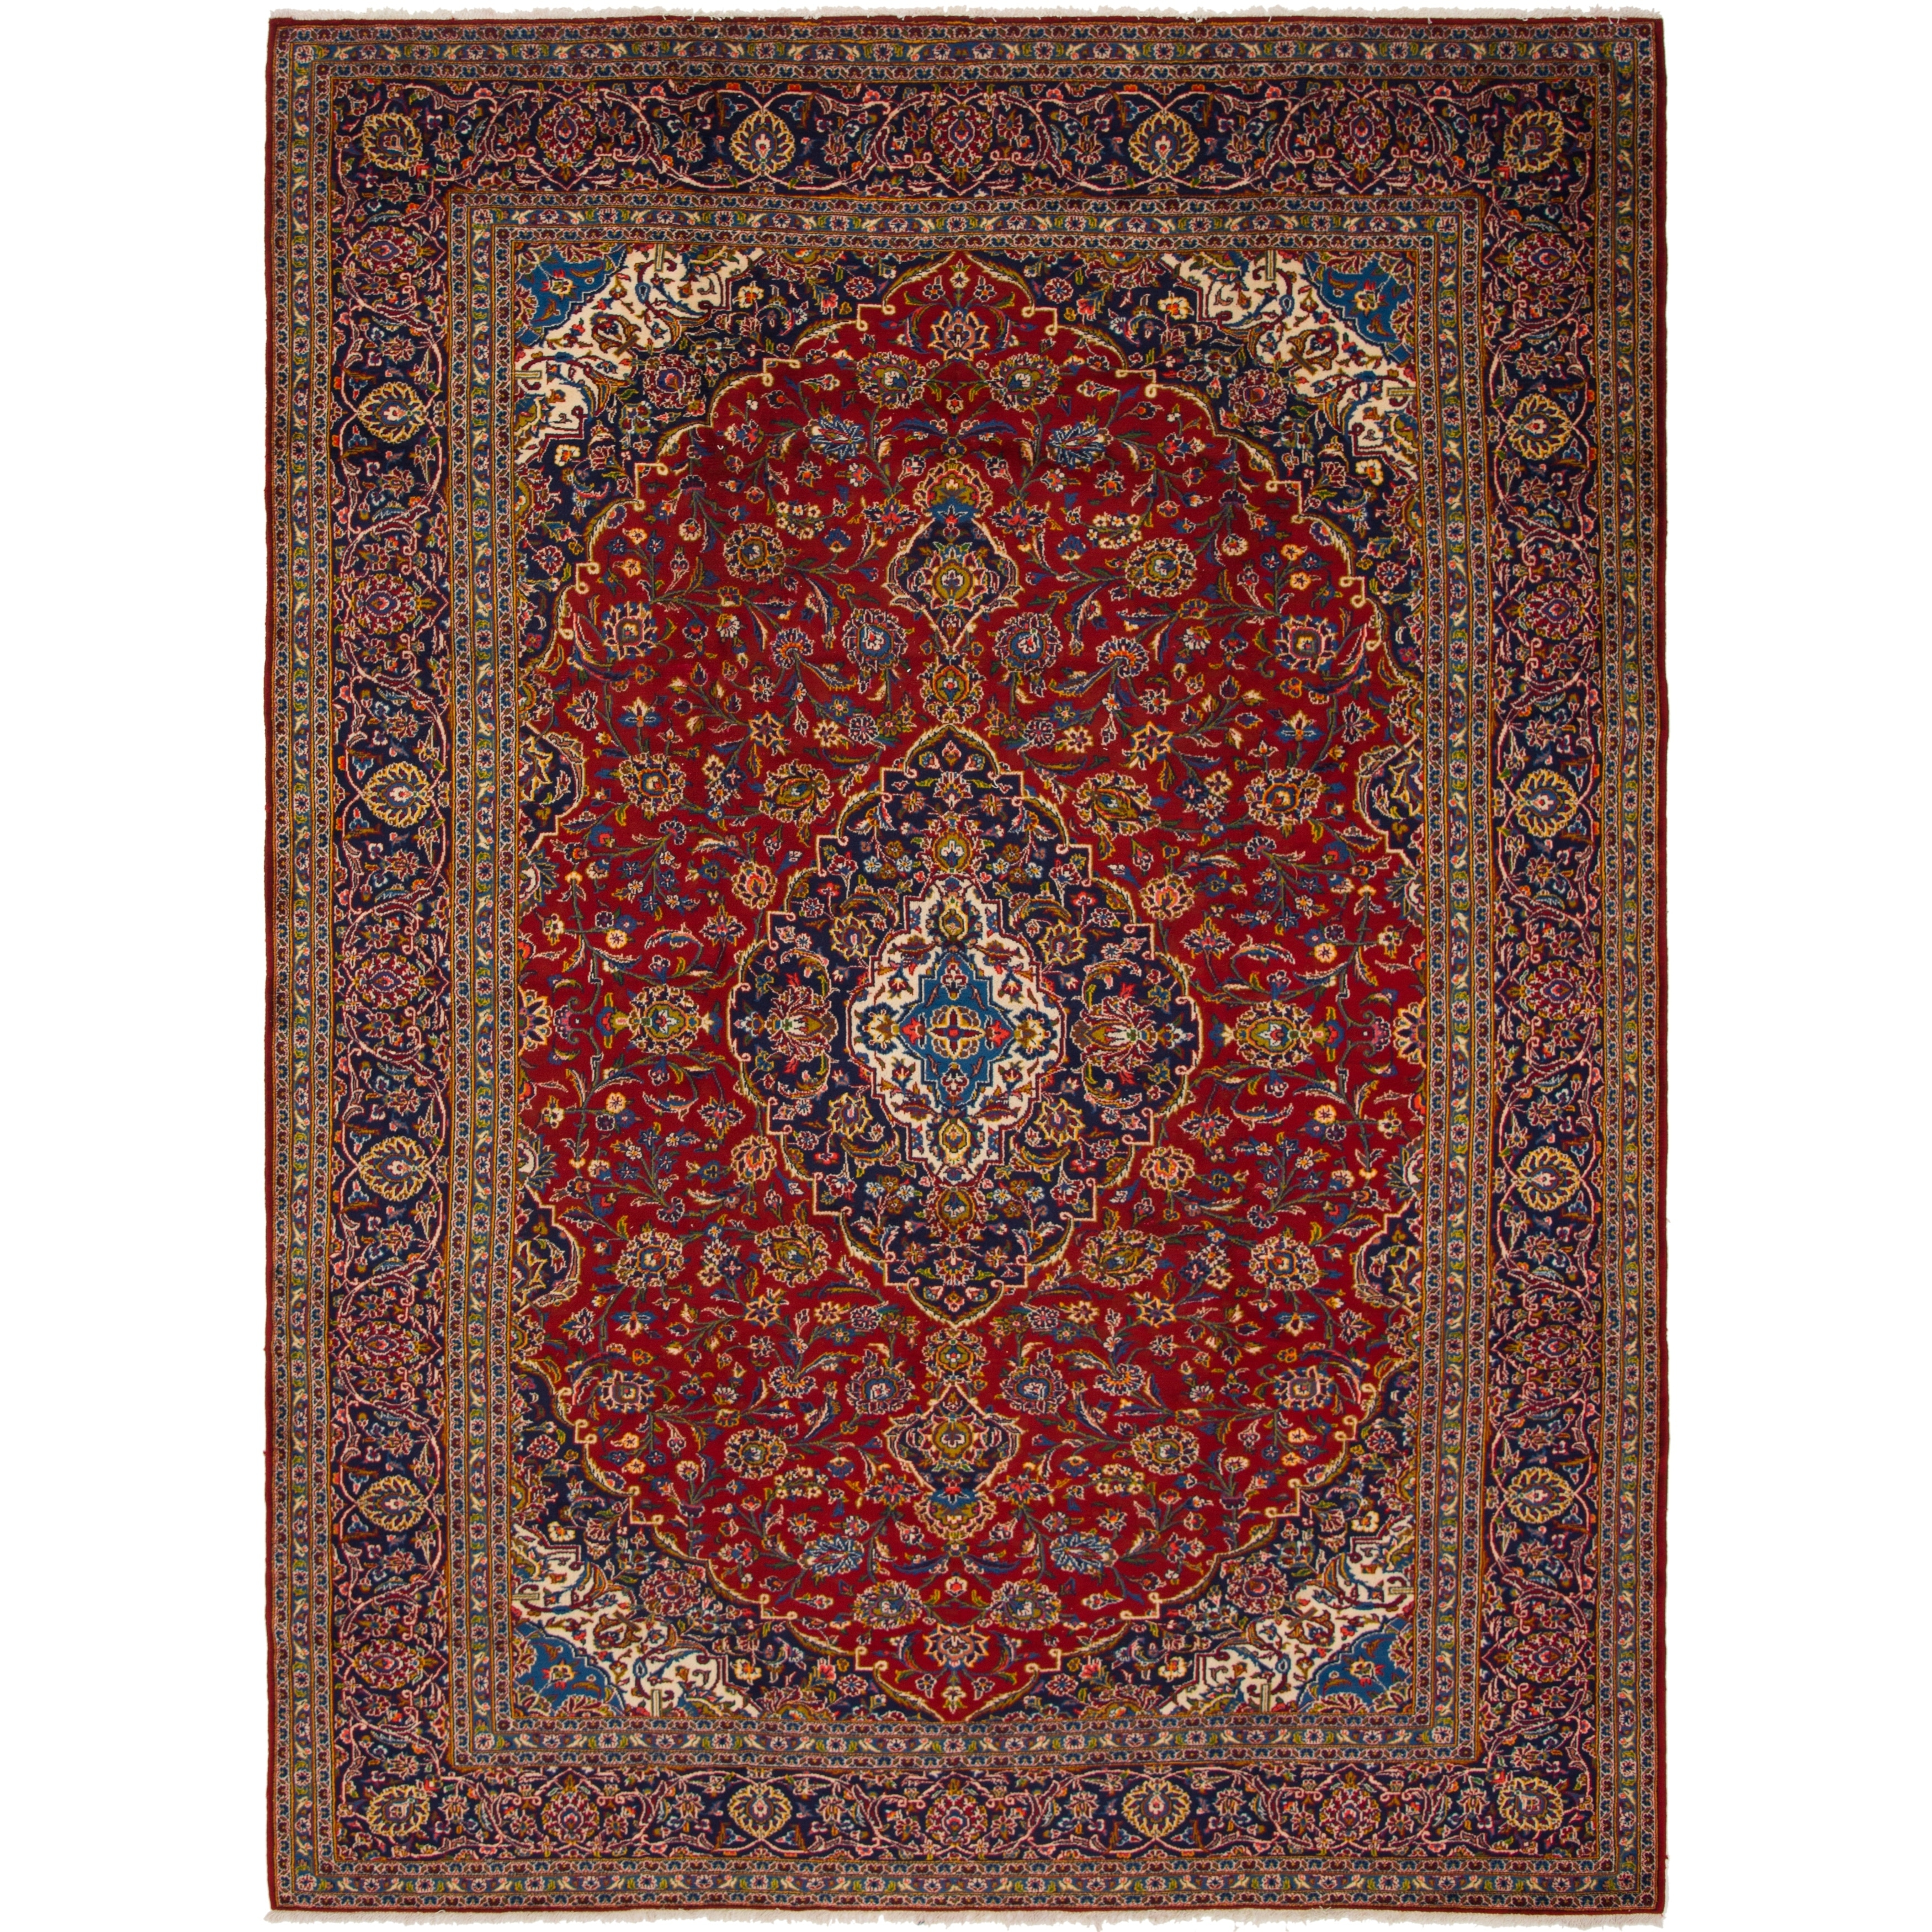 Hand Knotted Kashan Semi Antique Wool Area Rug - 9 10 x 13 8 (Red - 9 10 x 13 8)